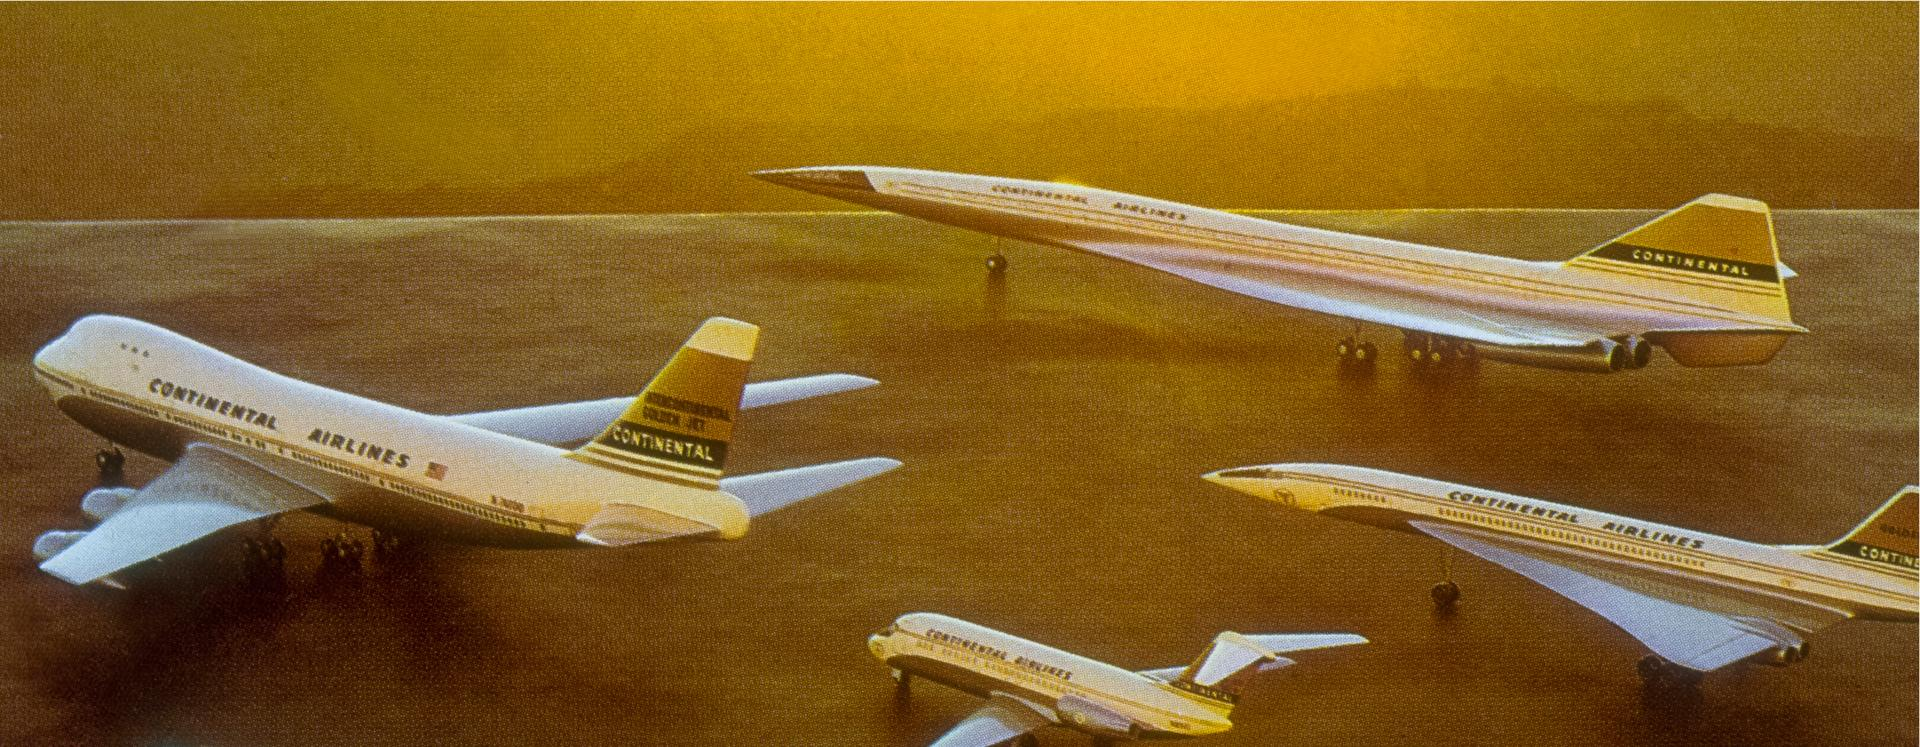 A 747 is part of the Continental fleet.